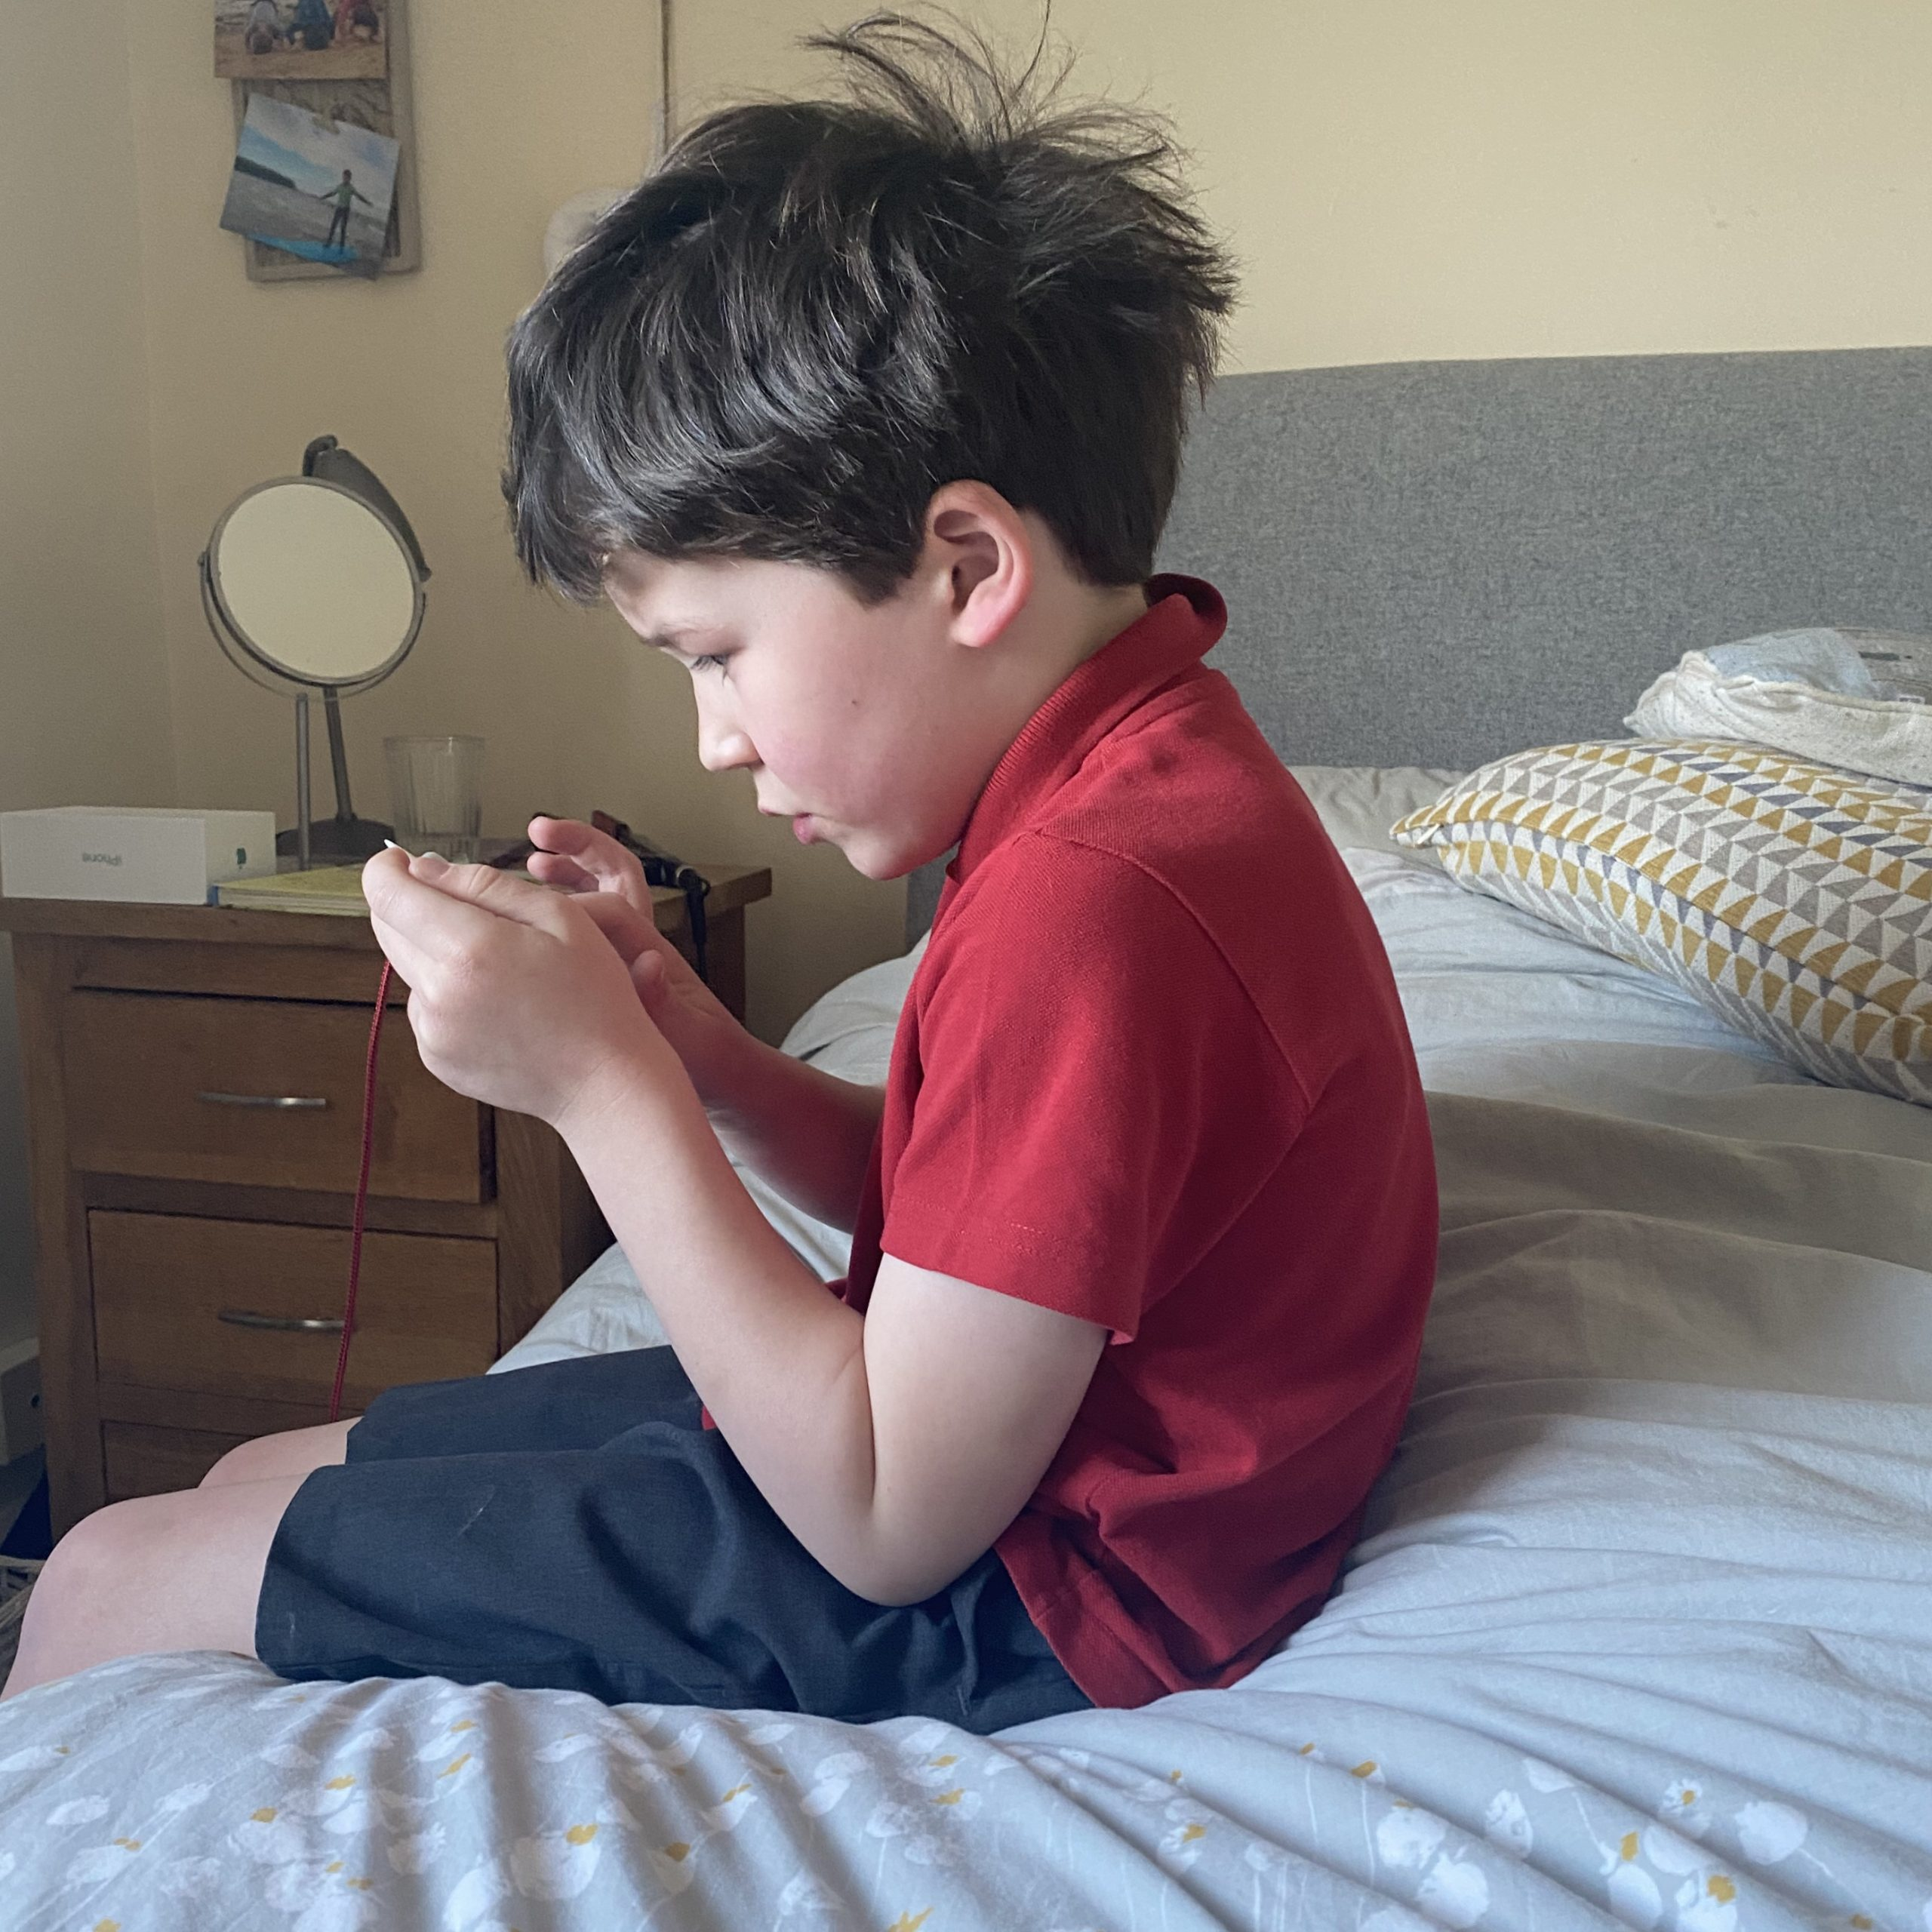 Family Life with a boy sat playing an online game on a bed